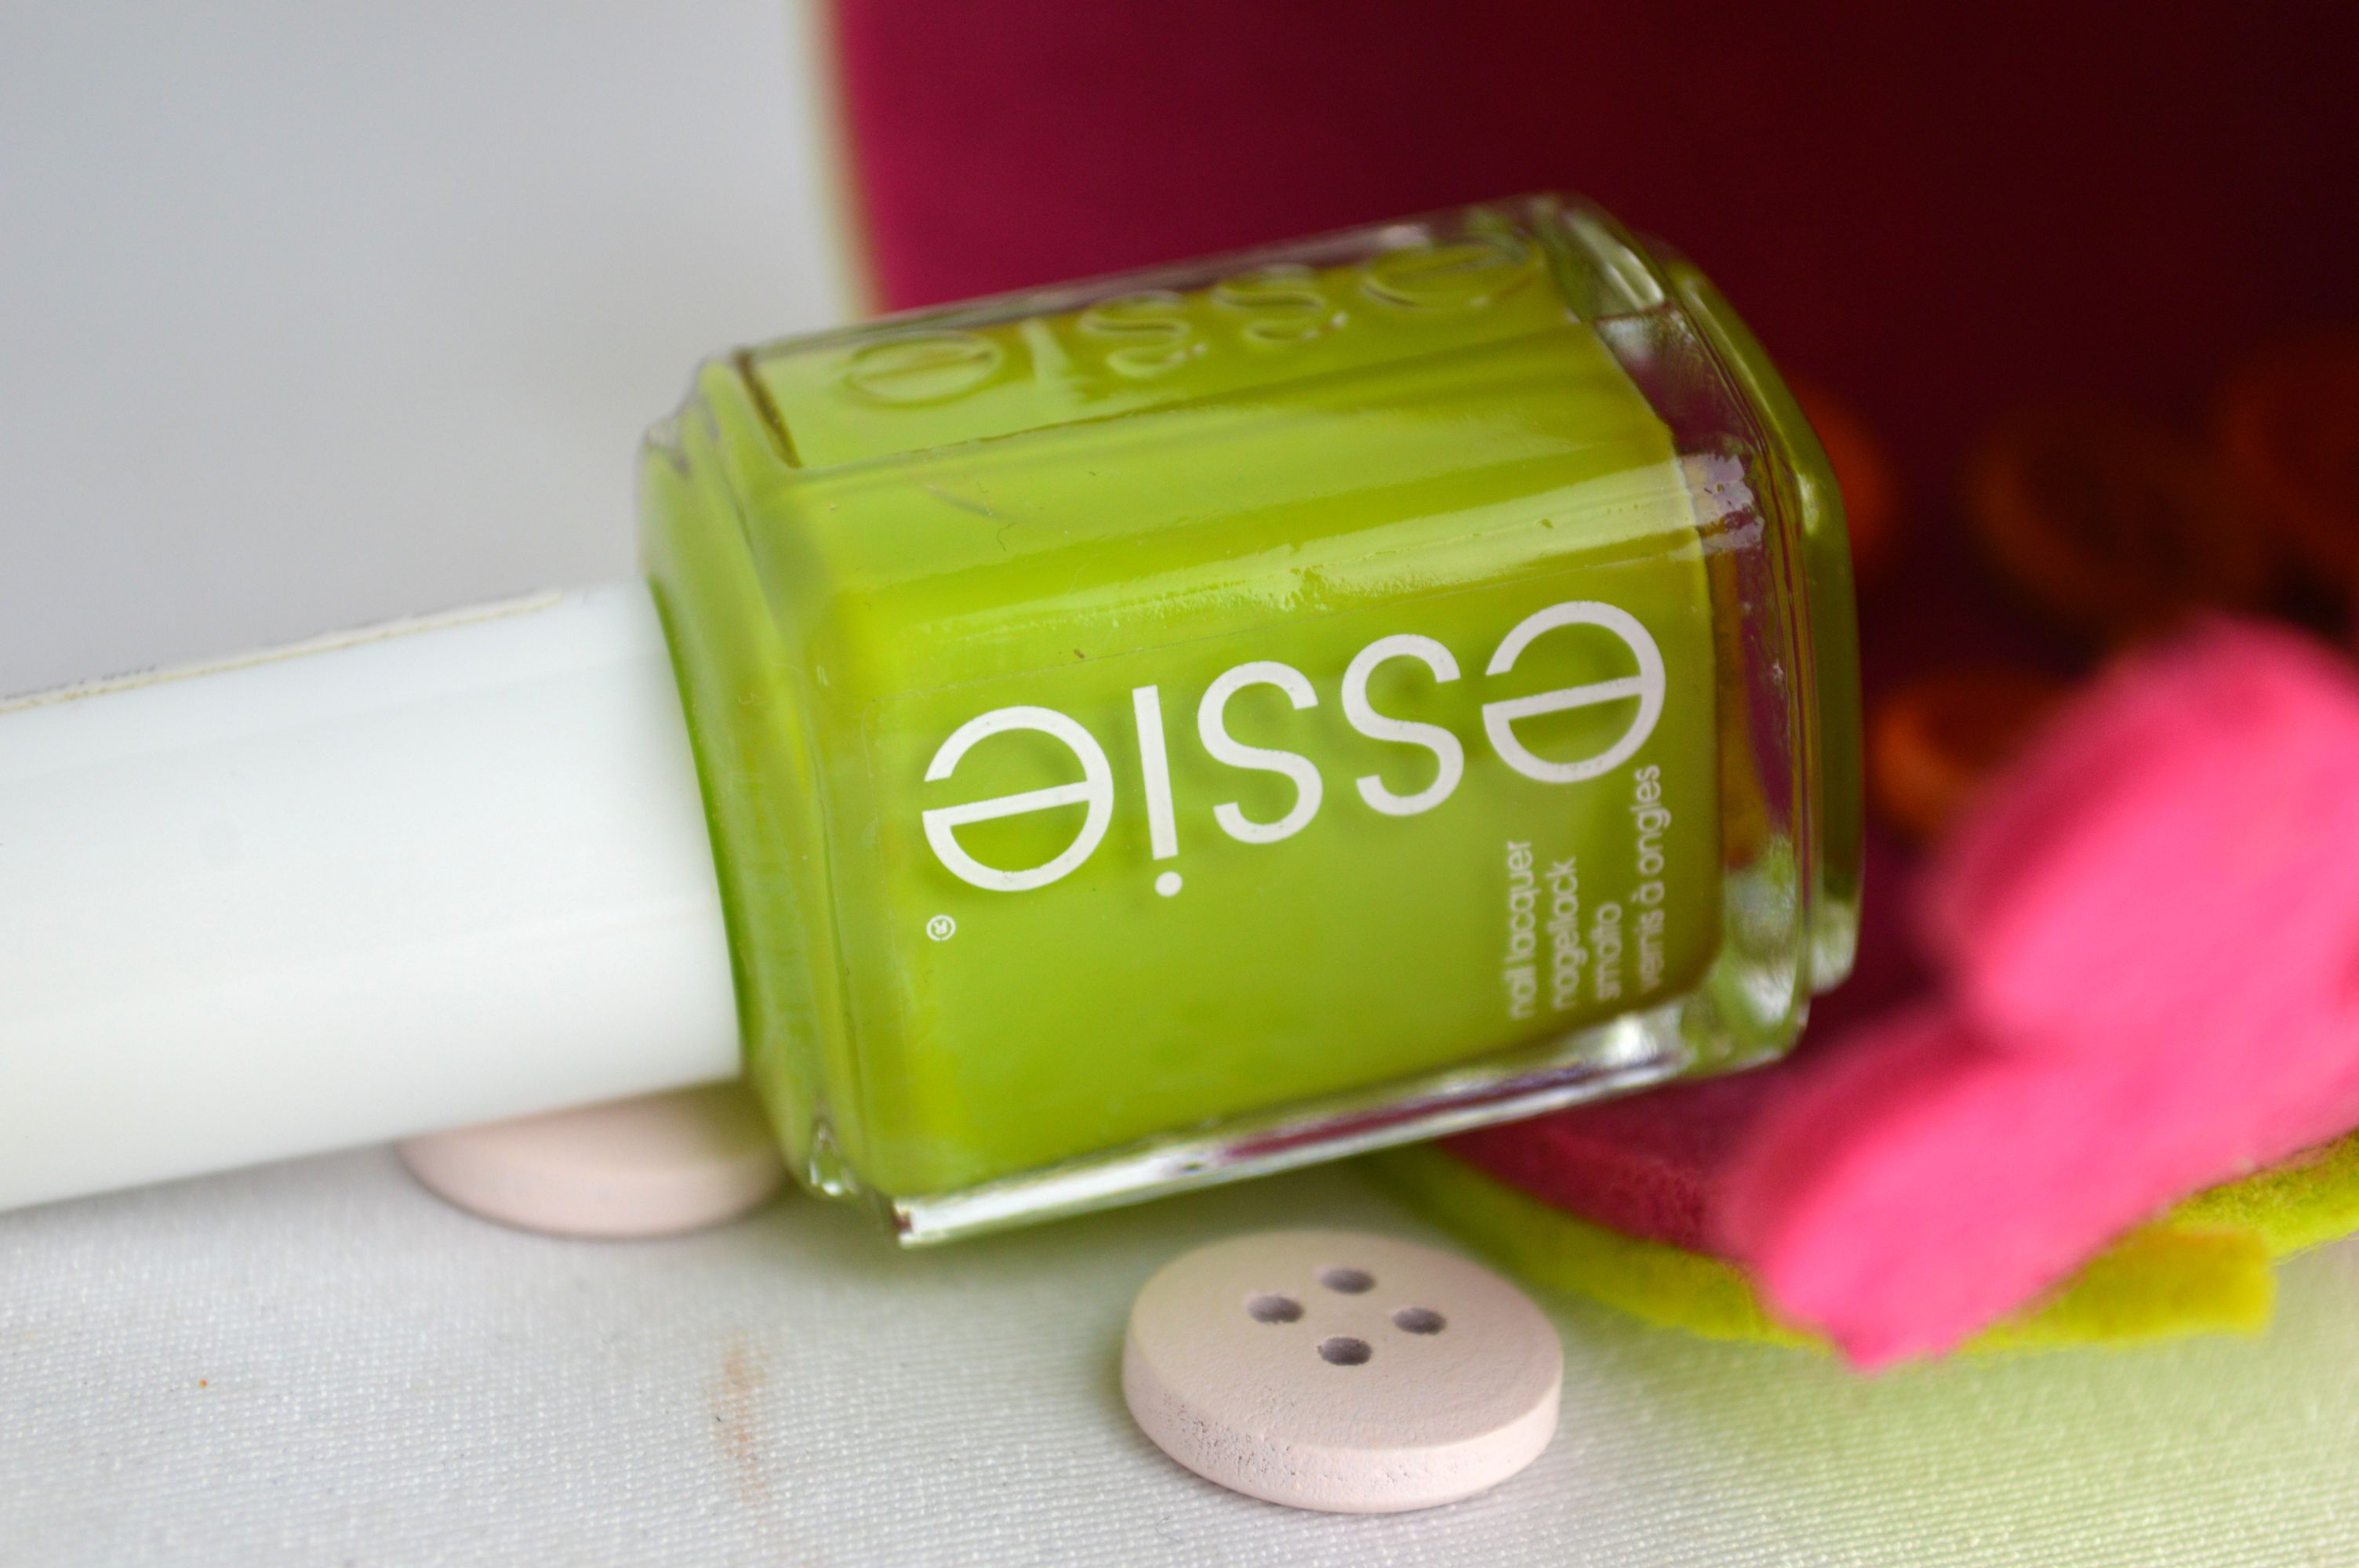 Essie The More The Merrier Nagellack